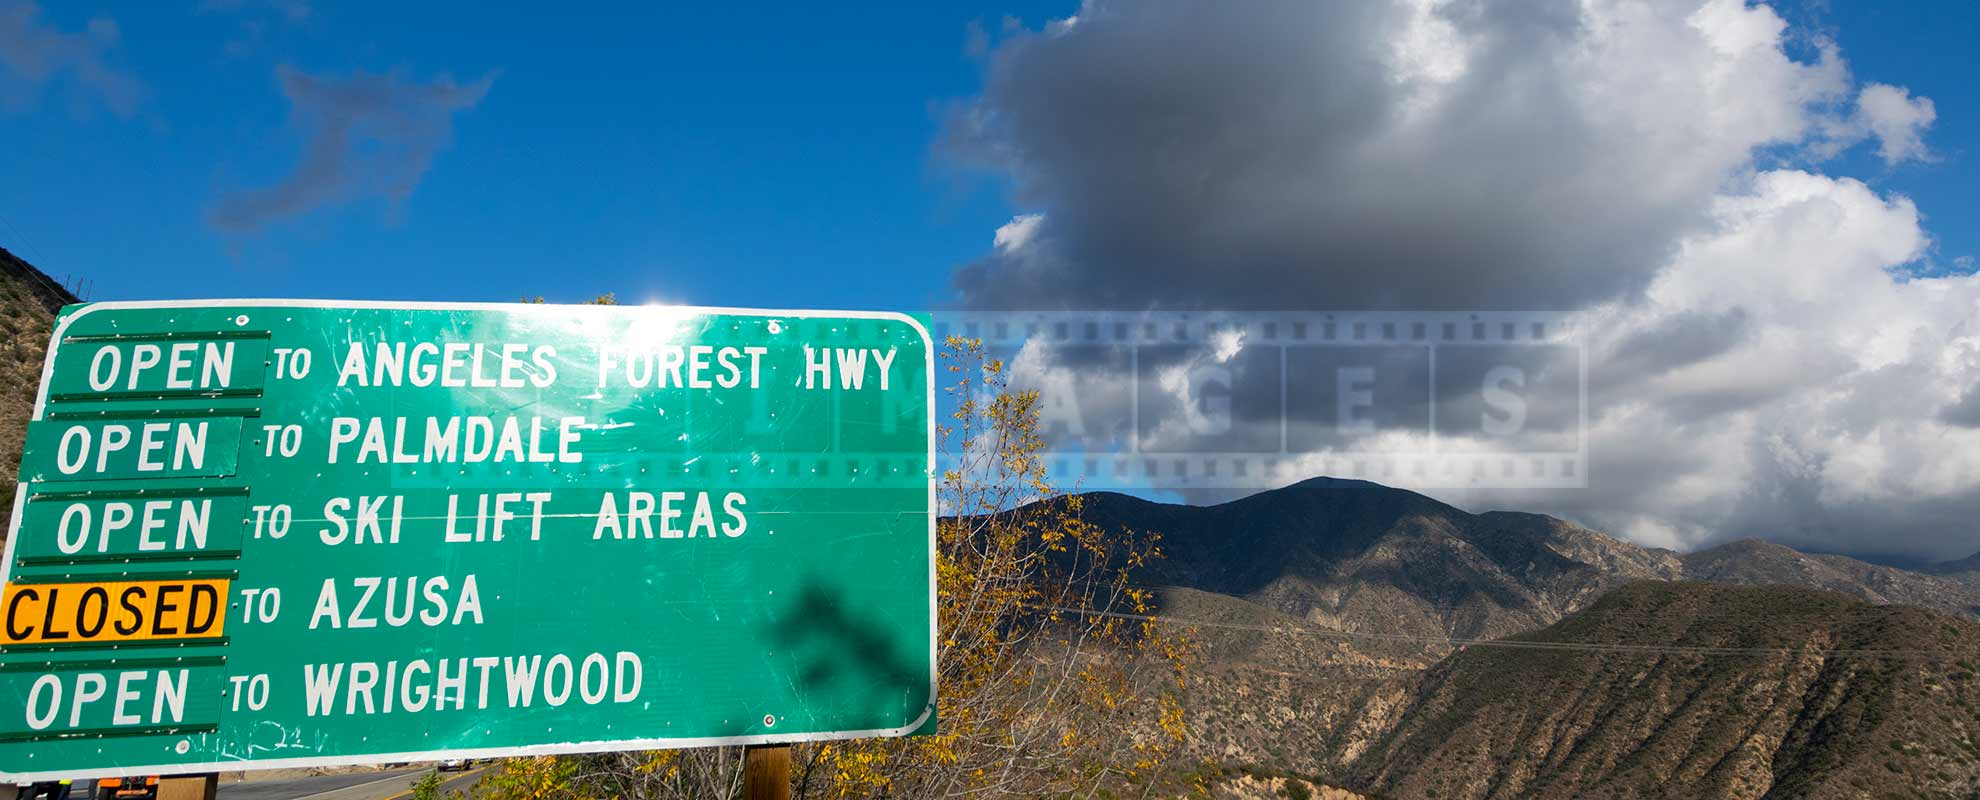 angeles forest highway open sign